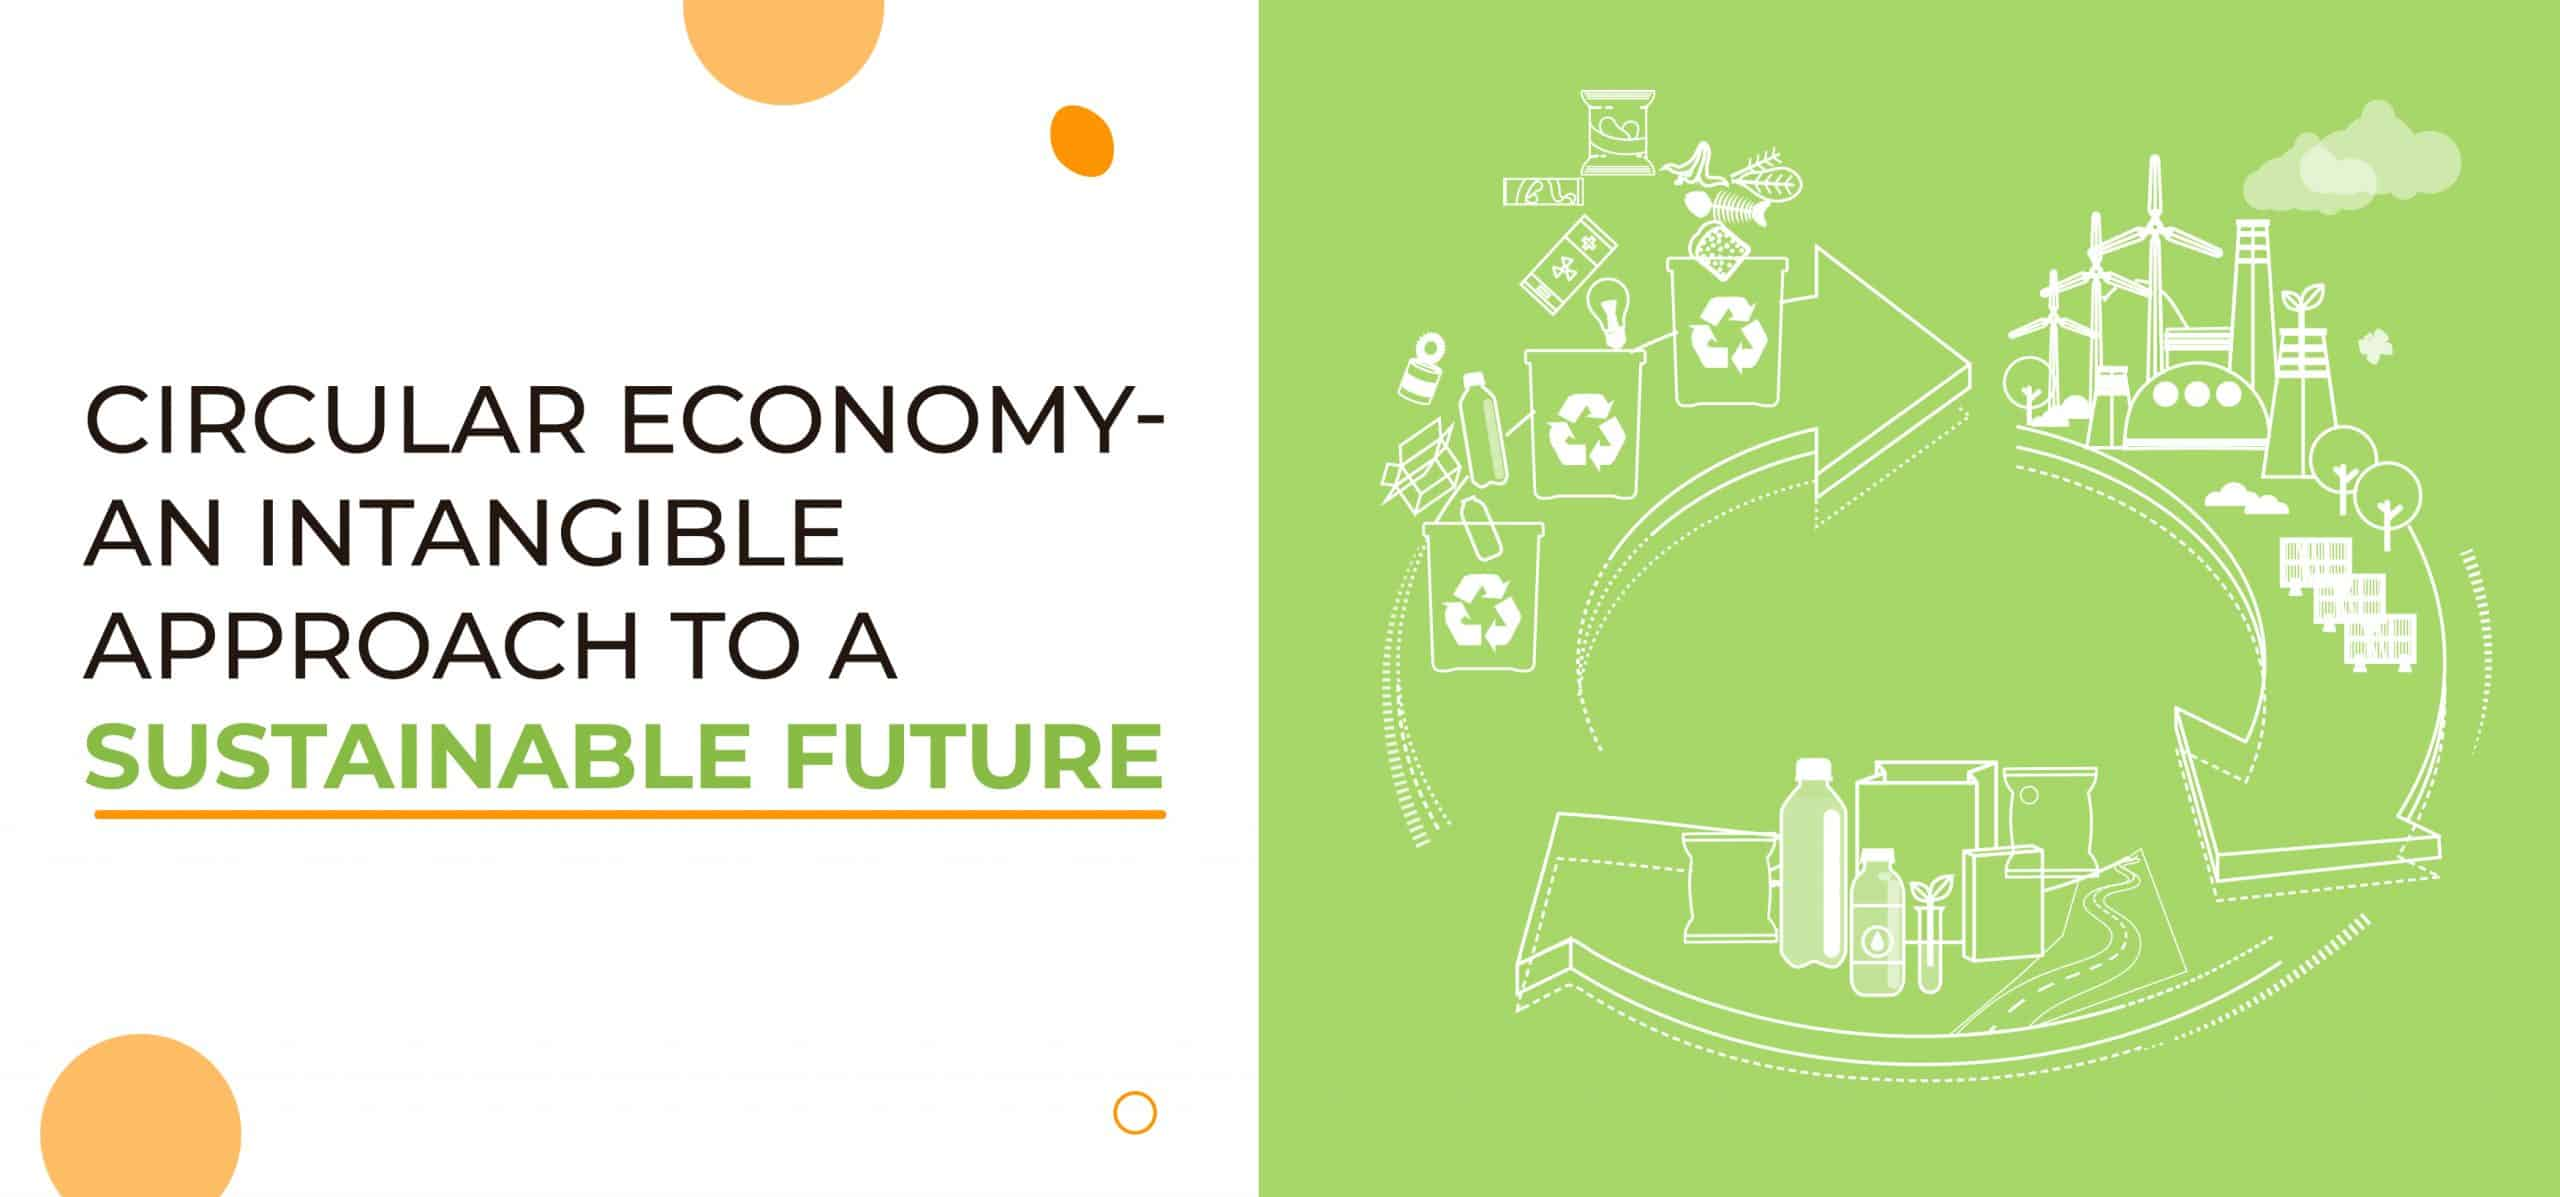 Circular Economy– An Intangible Approach To A Sustainable Future